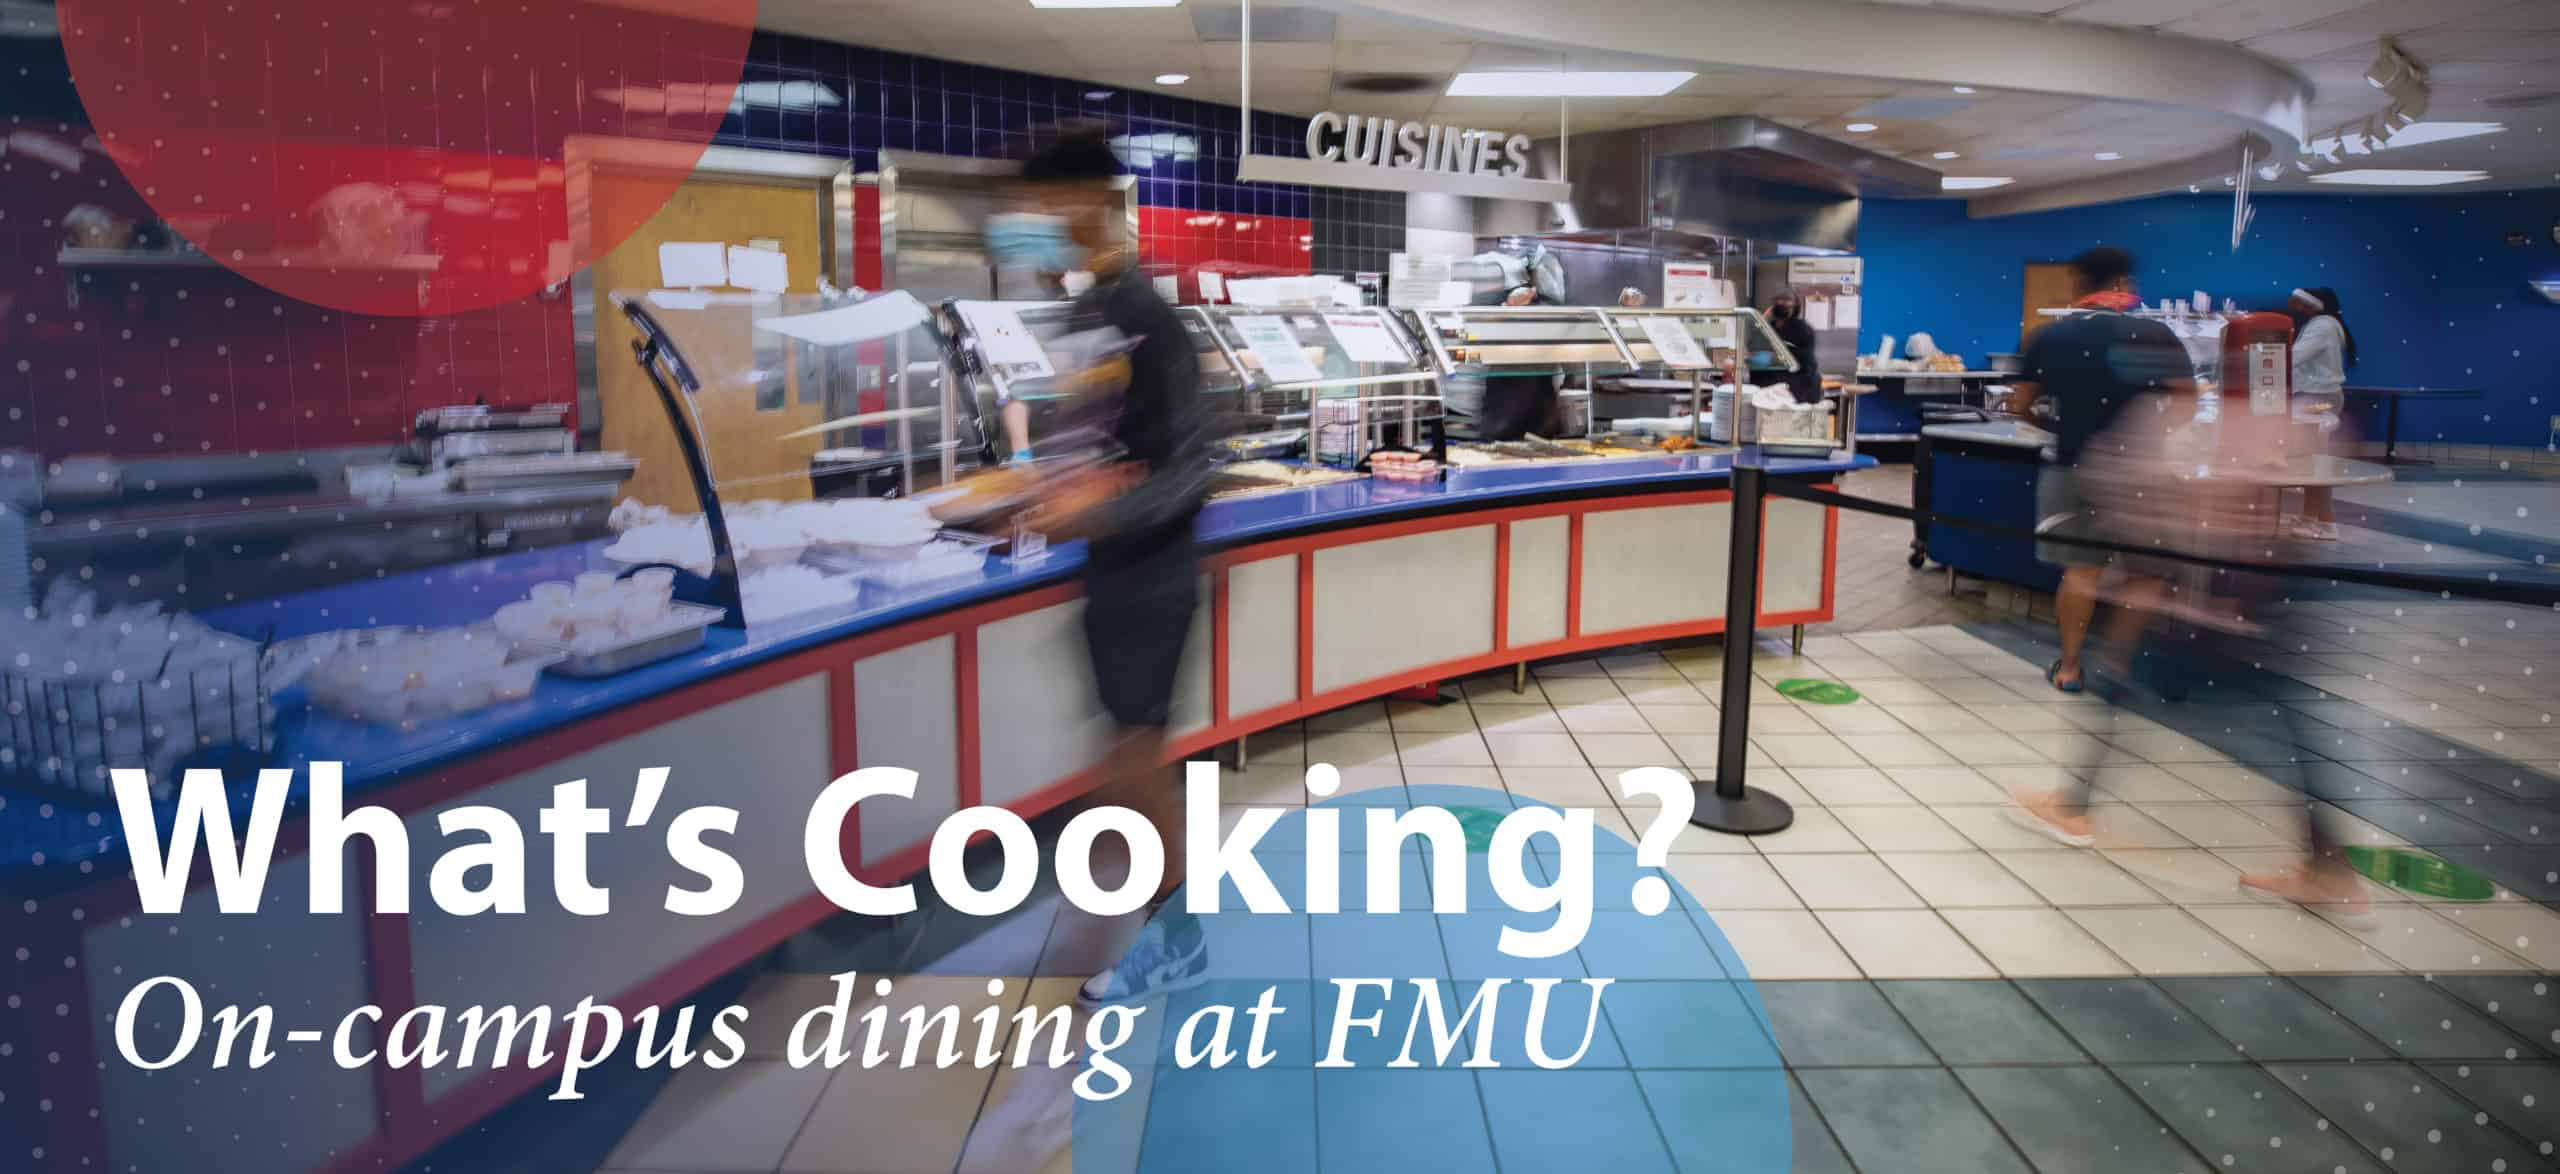 """The dining hall with the text, """"What's Cooking? On-campus dining at FMU."""""""